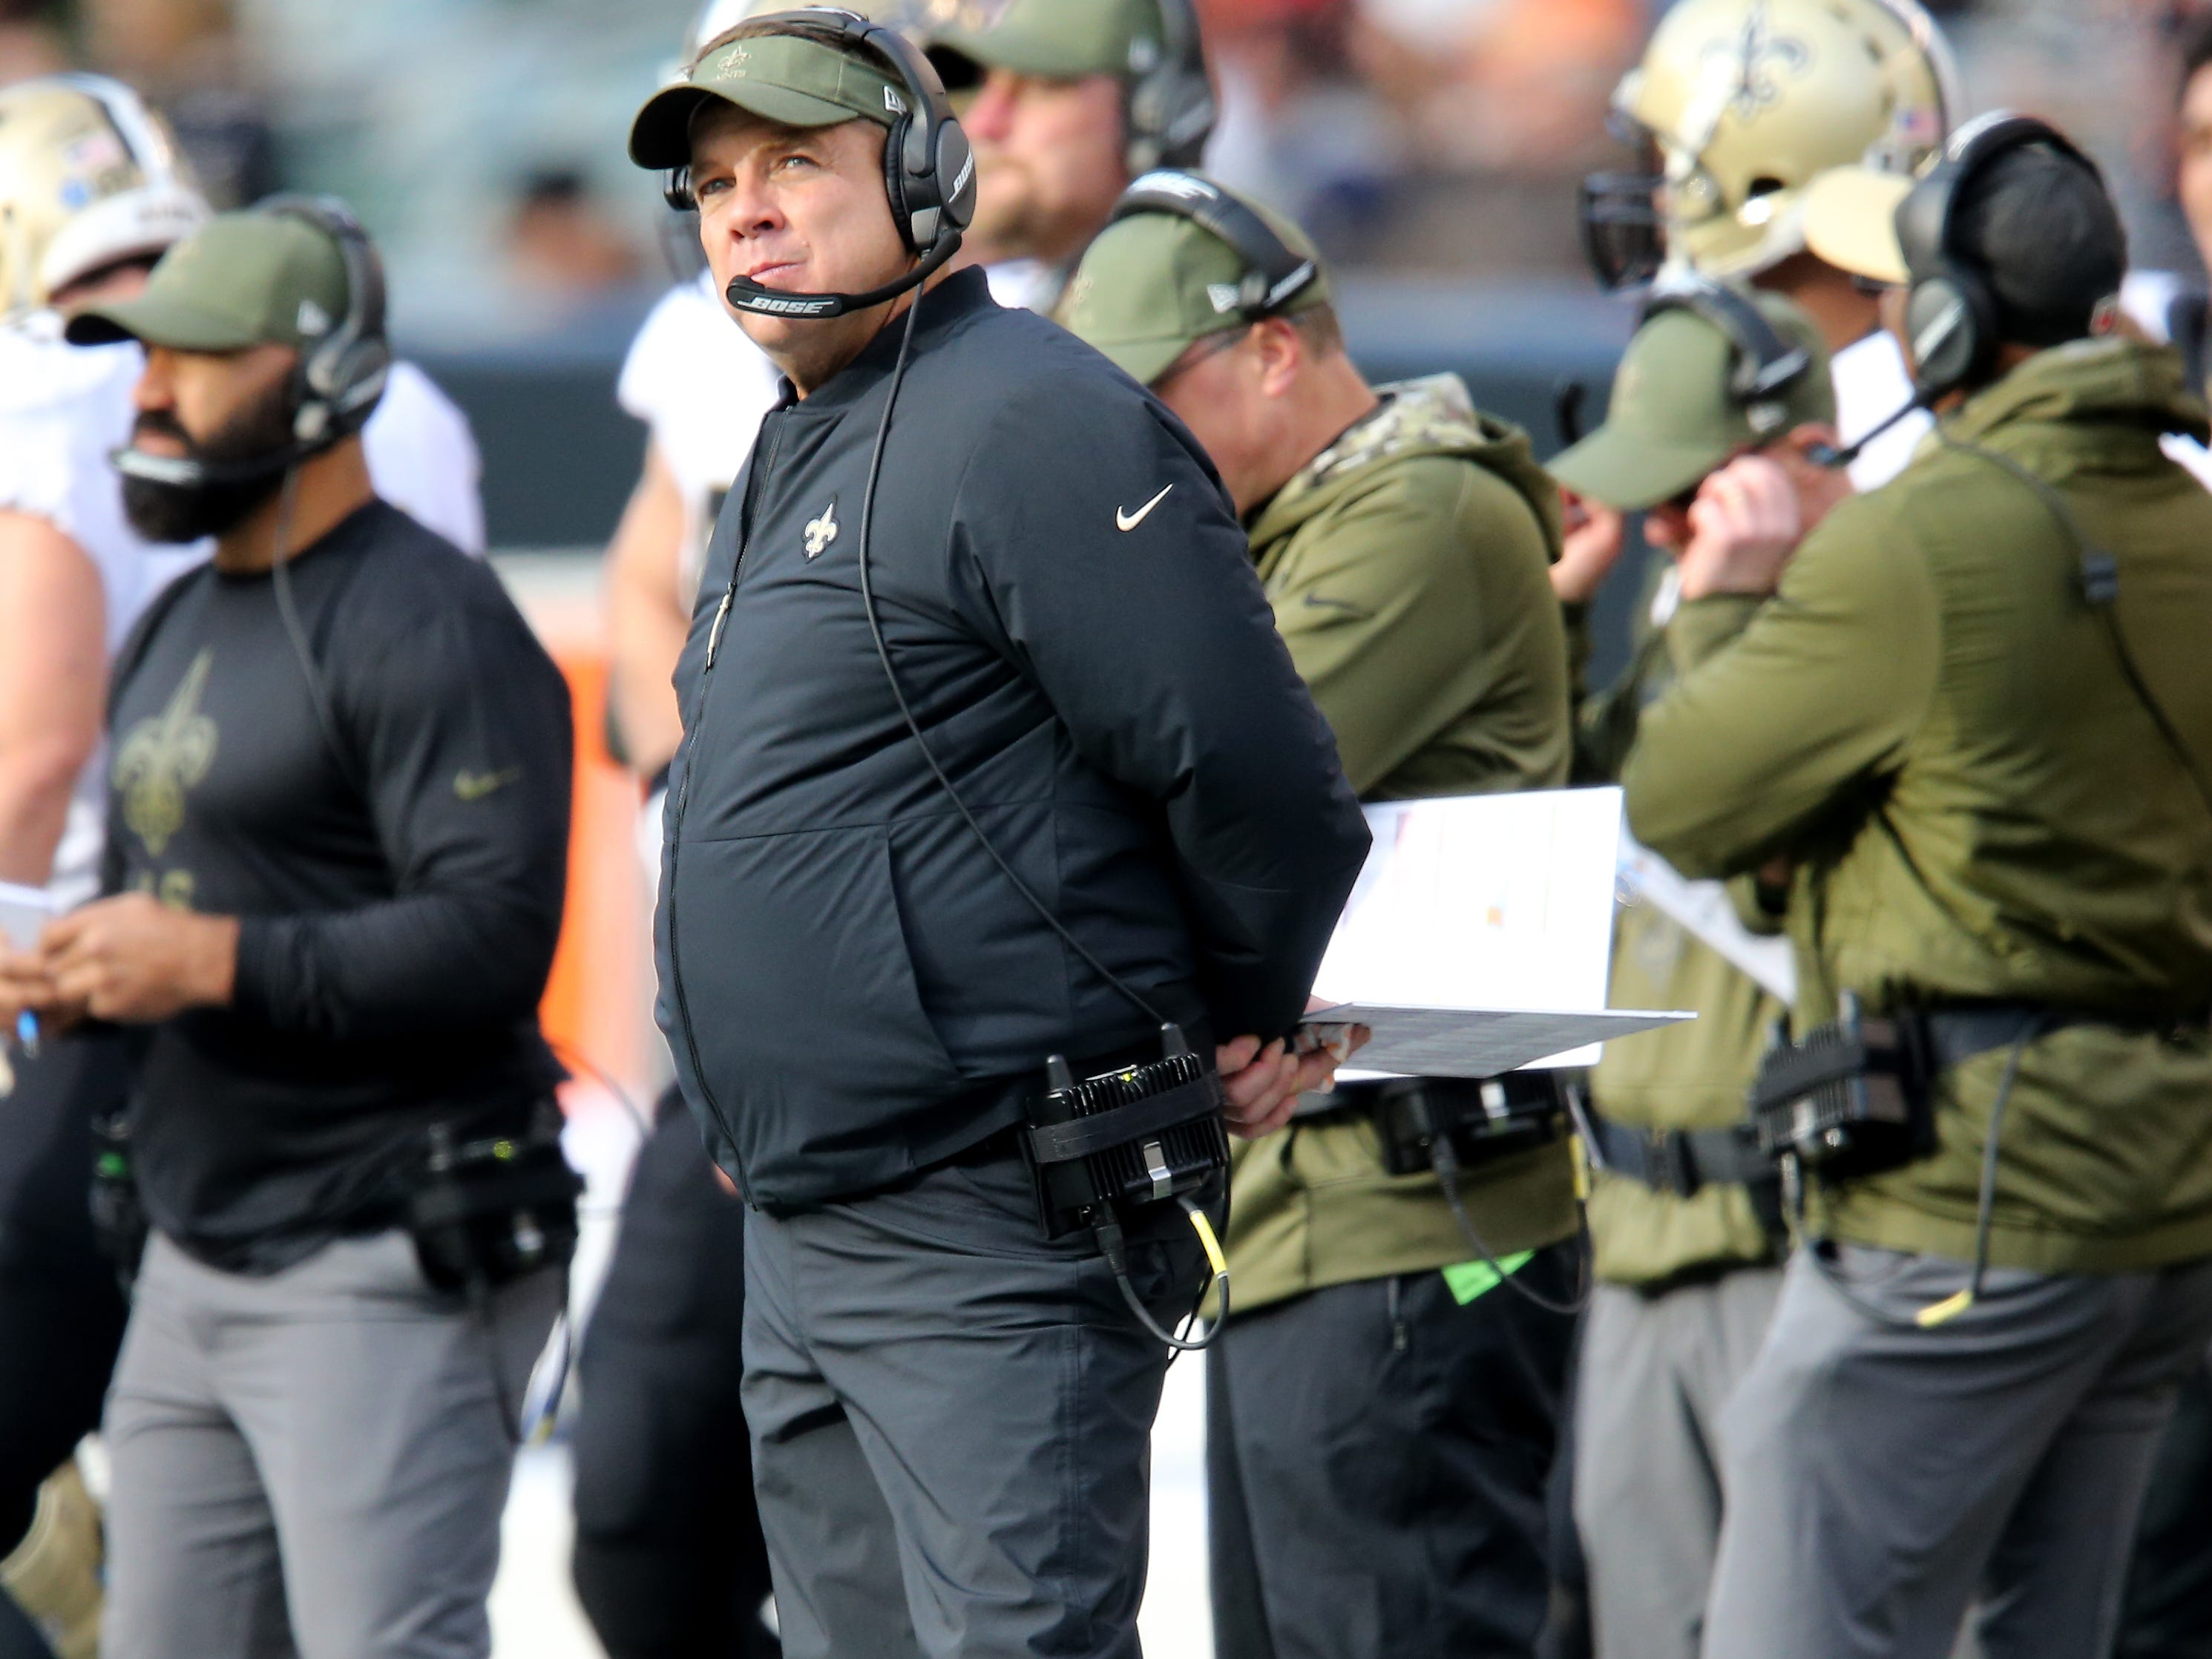 New Orleans Saints head coach Sean Payton looks up at the scoreboard in the fourth quarter of a Week 10 NFL game between the New Orleans Saints and the Cincinnati Bengals, Sunday, Nov. 11, 2018, at Paul Brown Stadium in Cincinnati. The New Orleans Saints won 51-14.